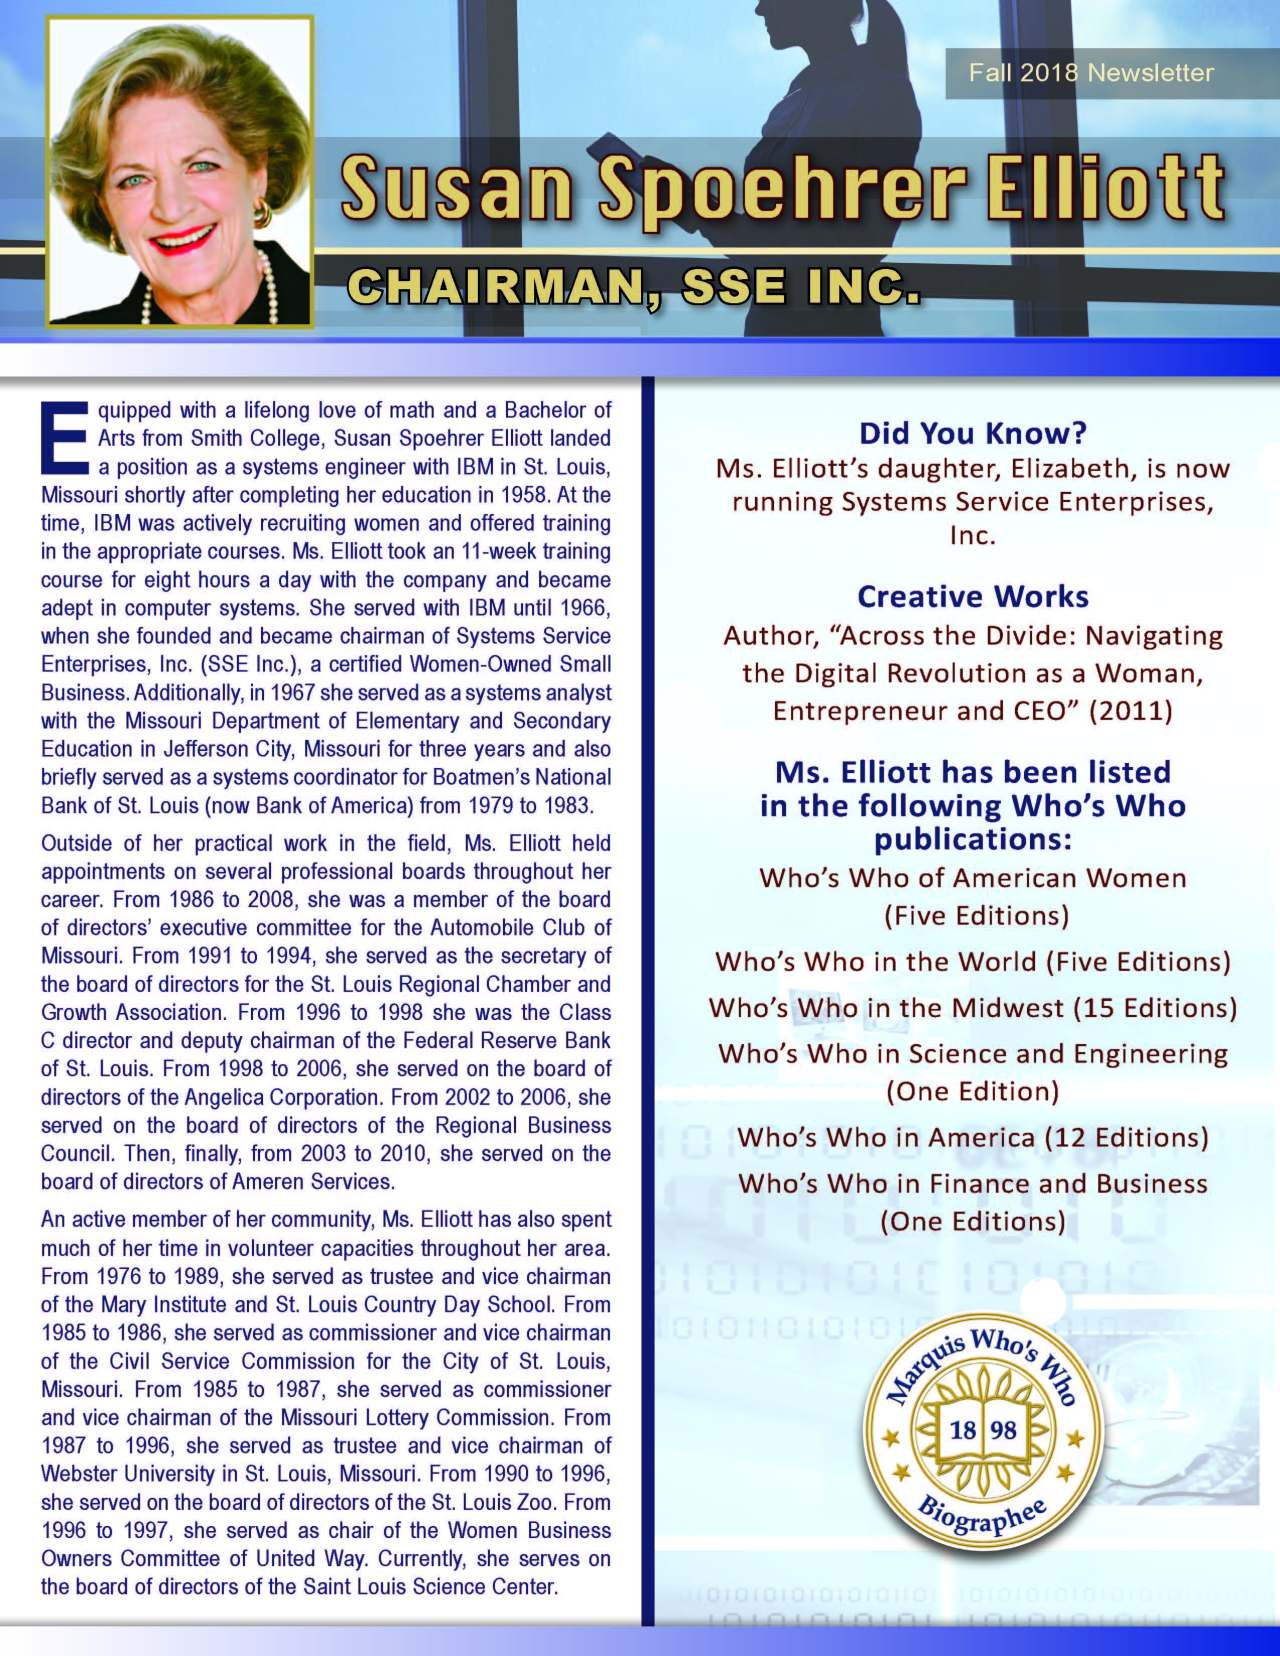 Elliott, Susan 3899117_16684623 Newsletter.jpg